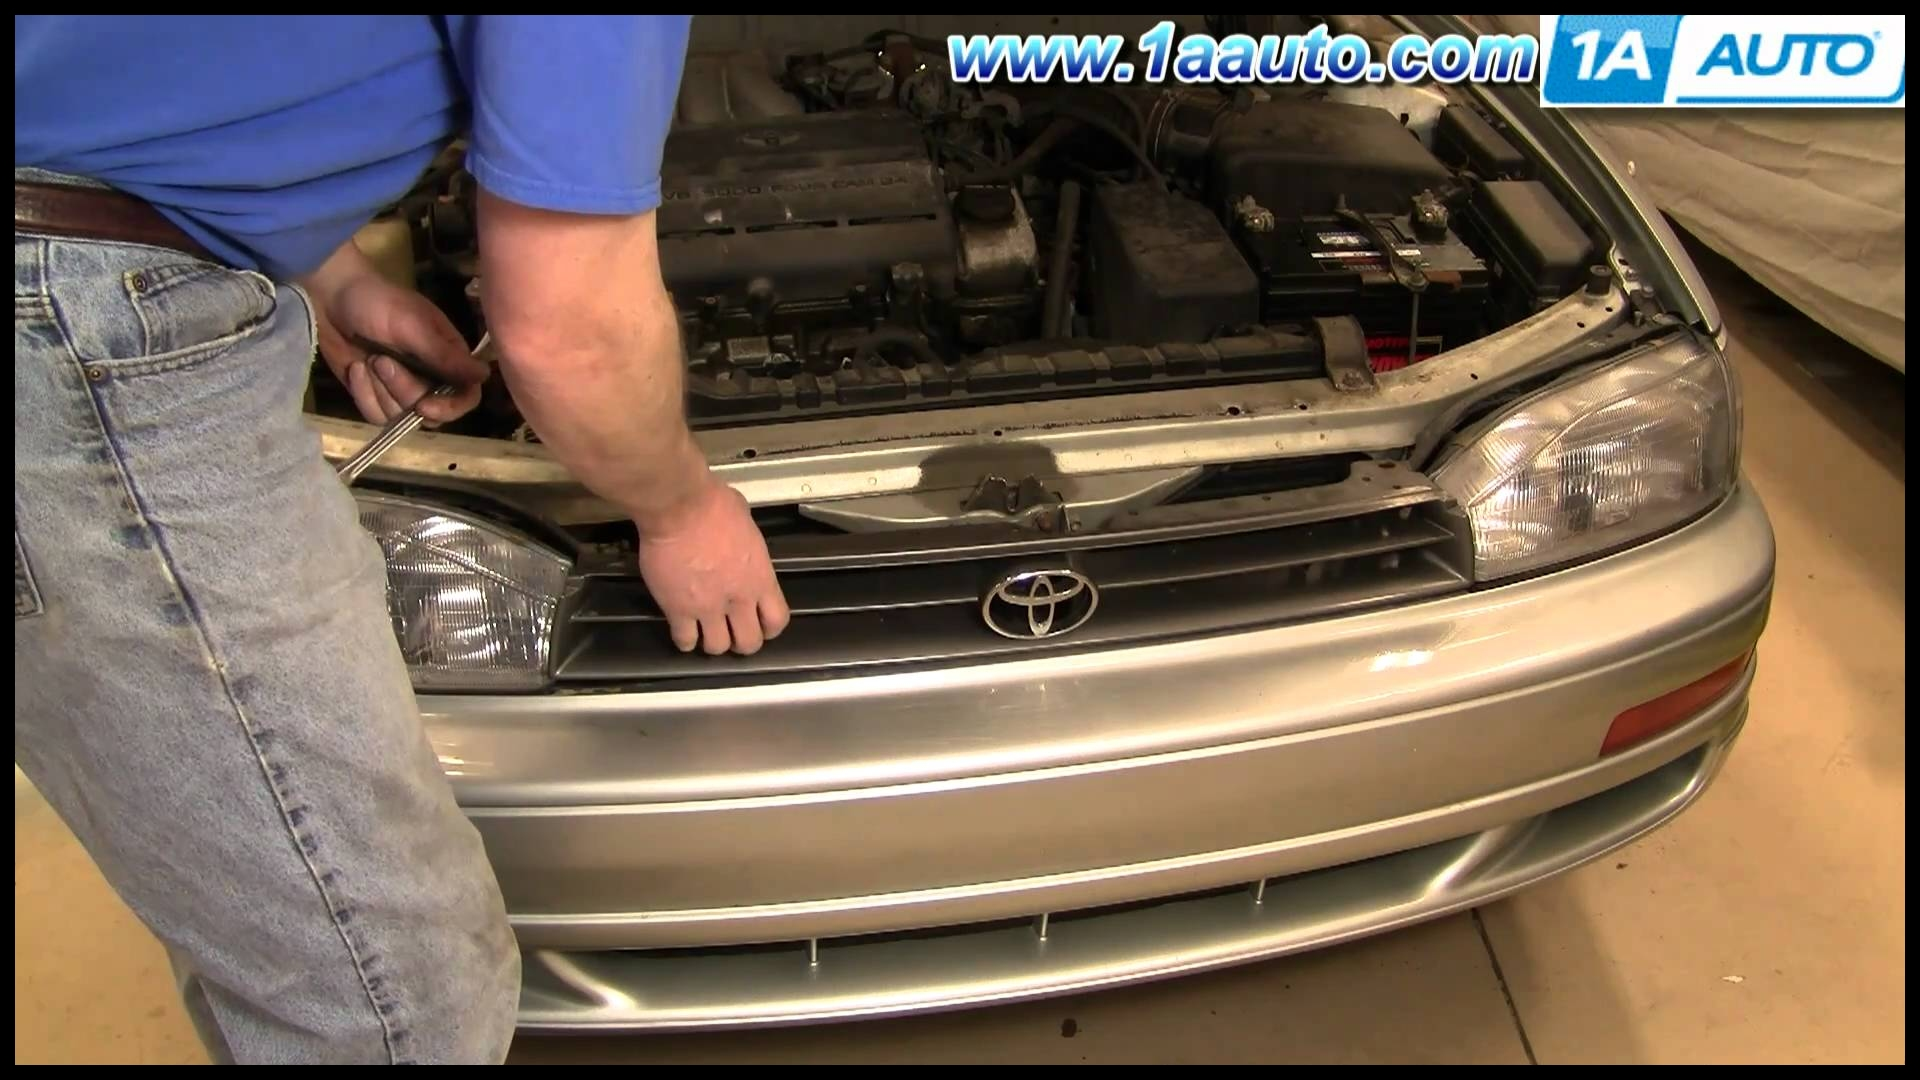 How To Install Replace Damaged Front Radiator Grille Toyota Camry 92 94 1AAuto